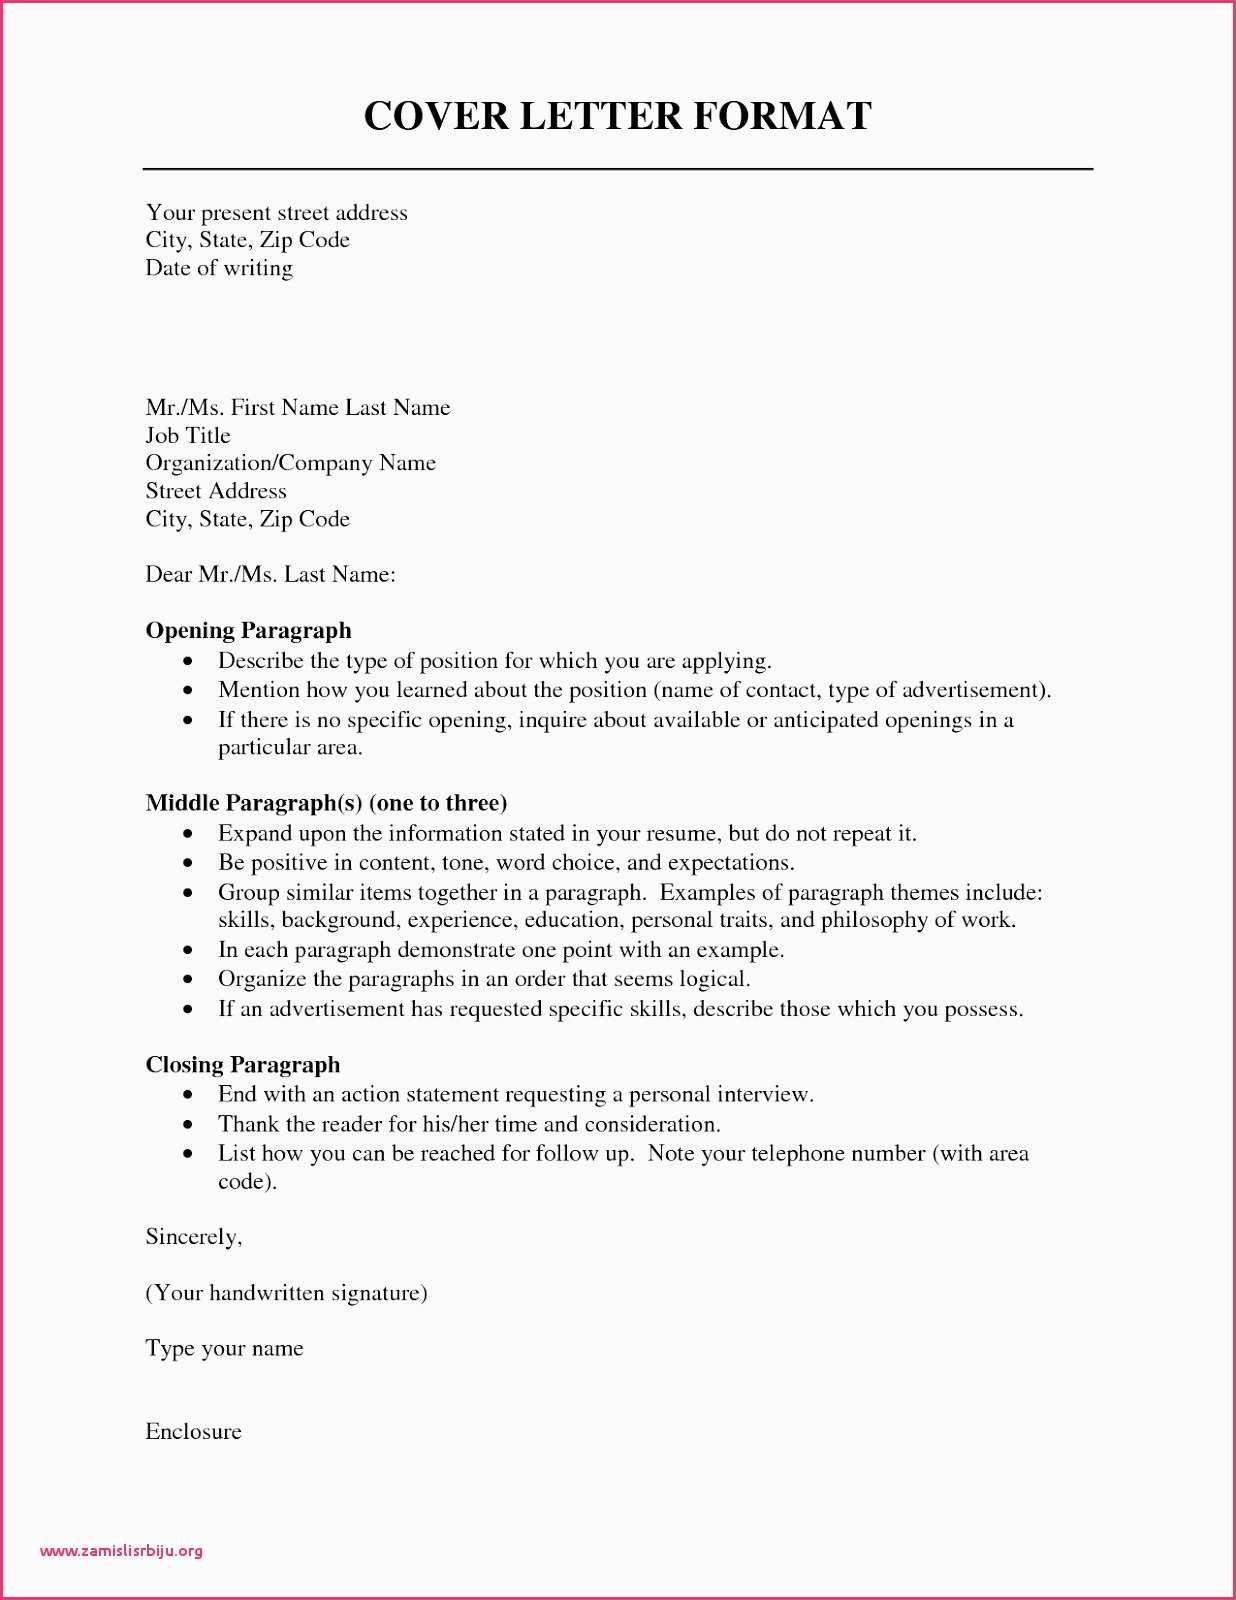 Cover Letter for Apostille Example 12 13 Cover Letter for Apostille Request